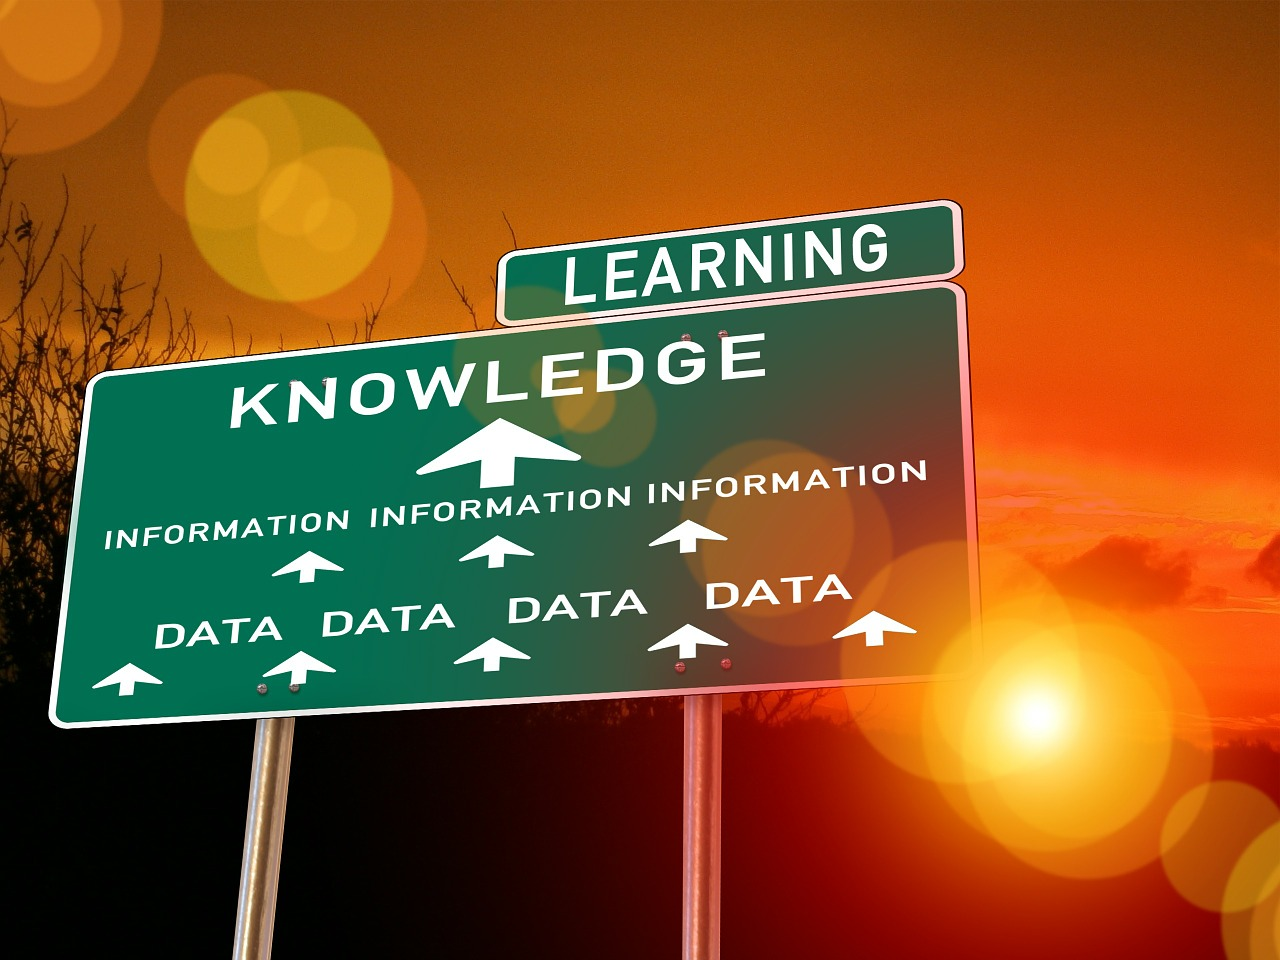 Customer data leads to learning about your target audience